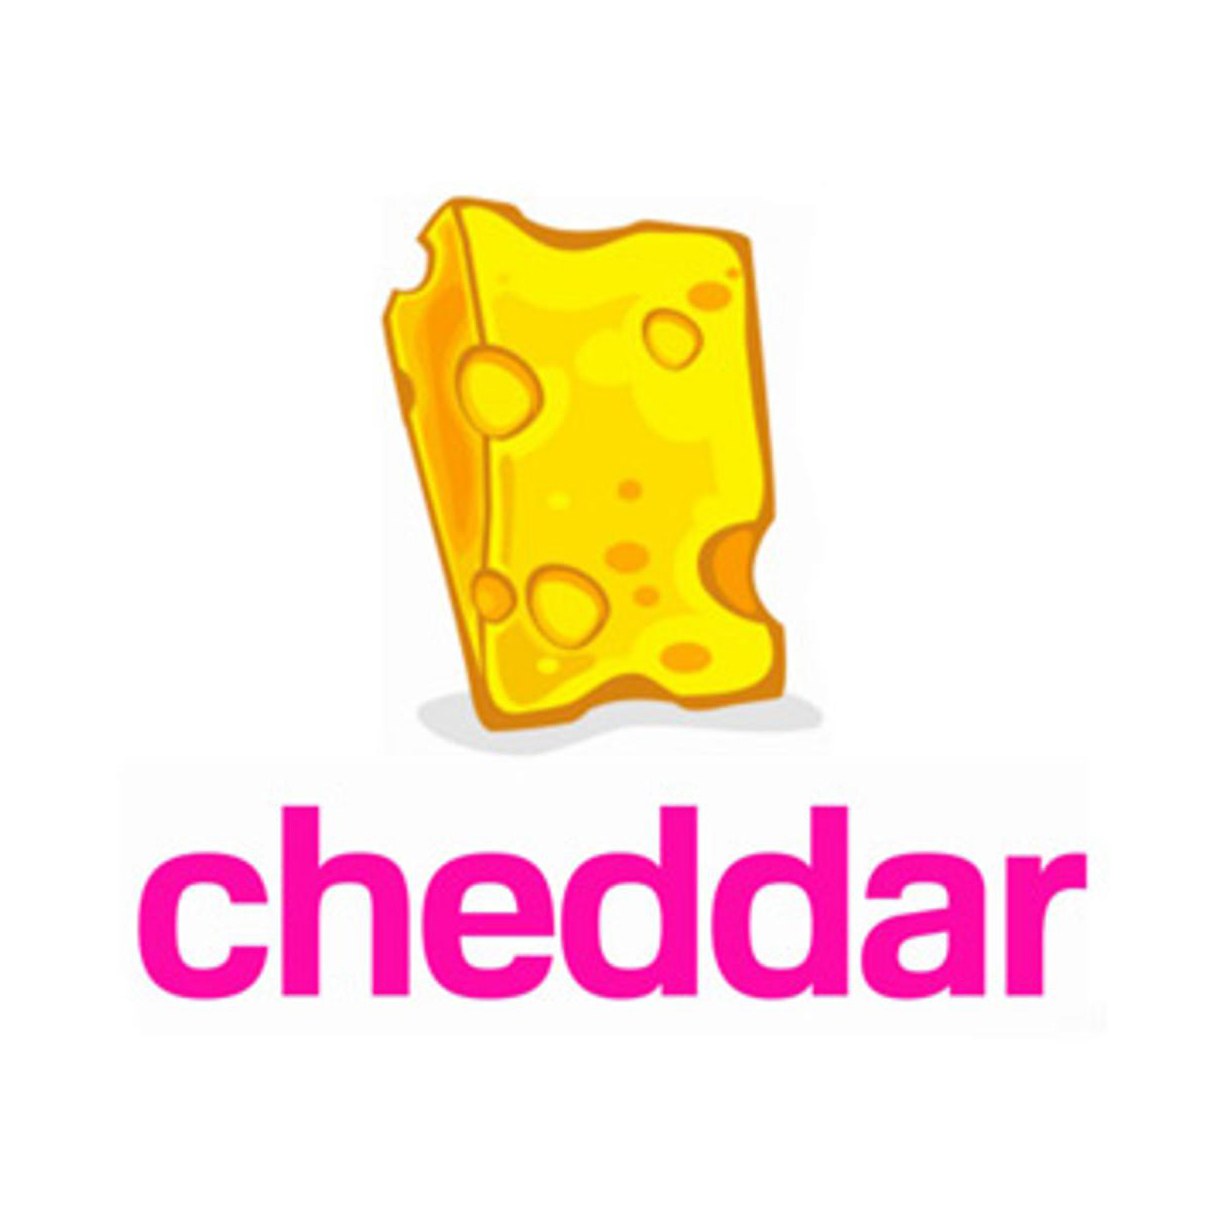 SEEN ON CHEDDAR TV (begins 17:27)